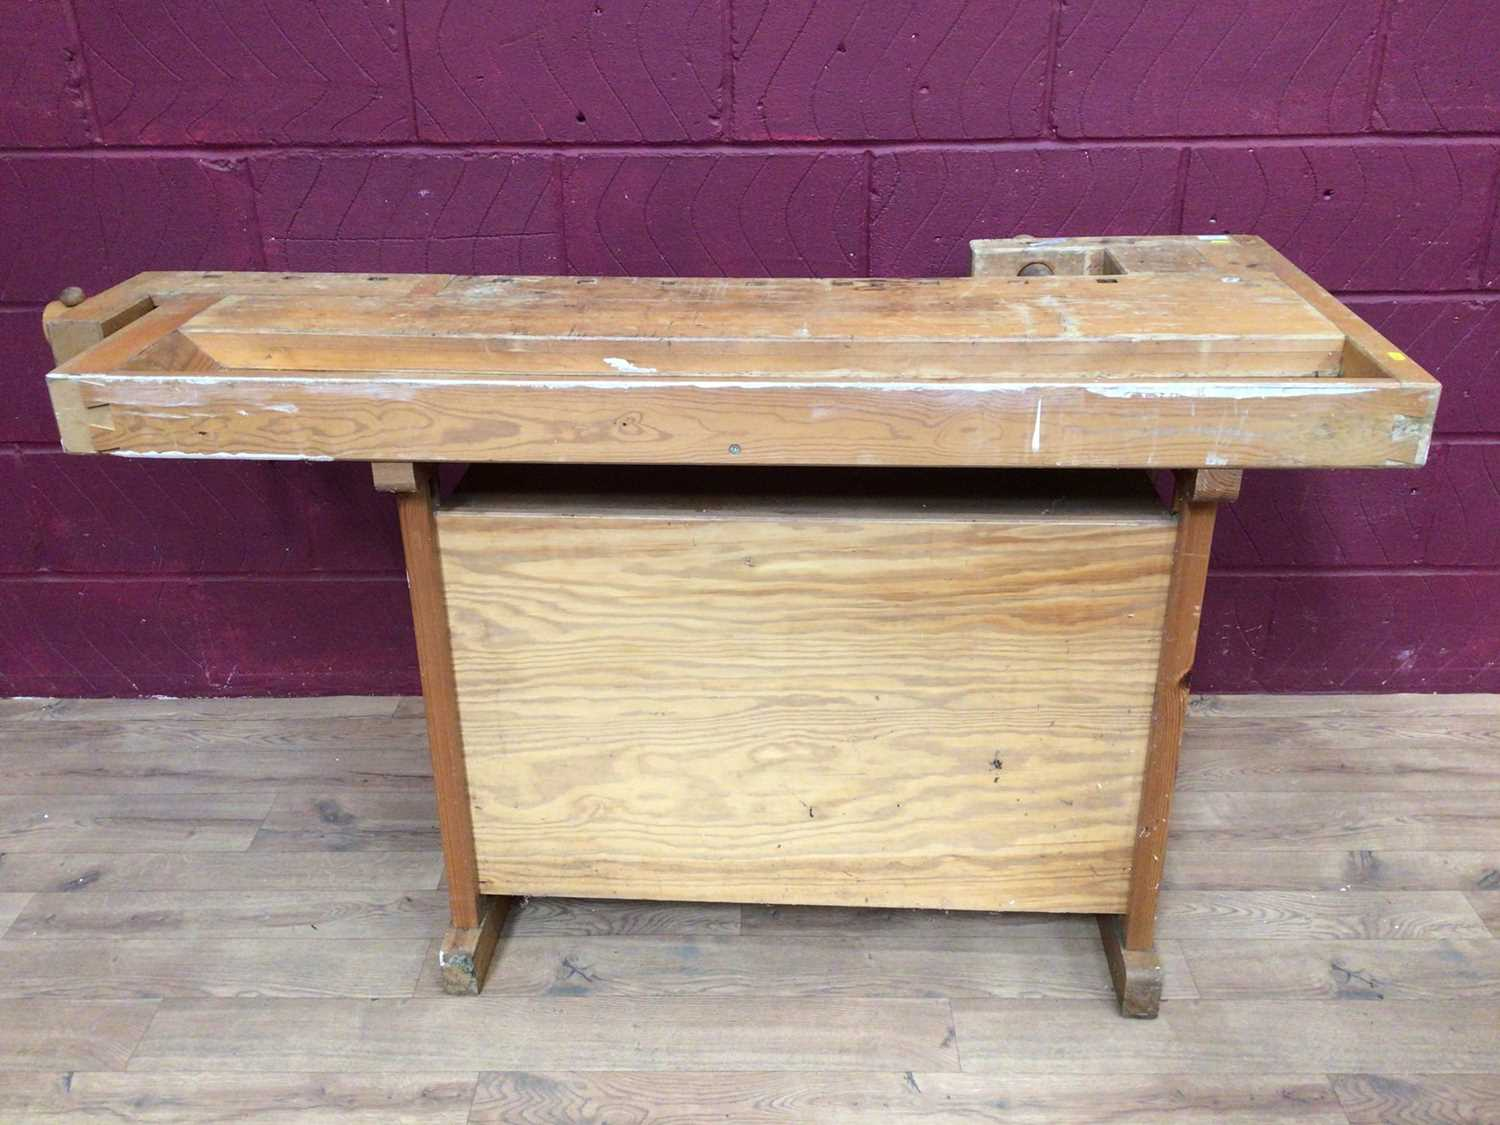 Scandanavian work bench by Gobergs of Sweden - Image 7 of 8